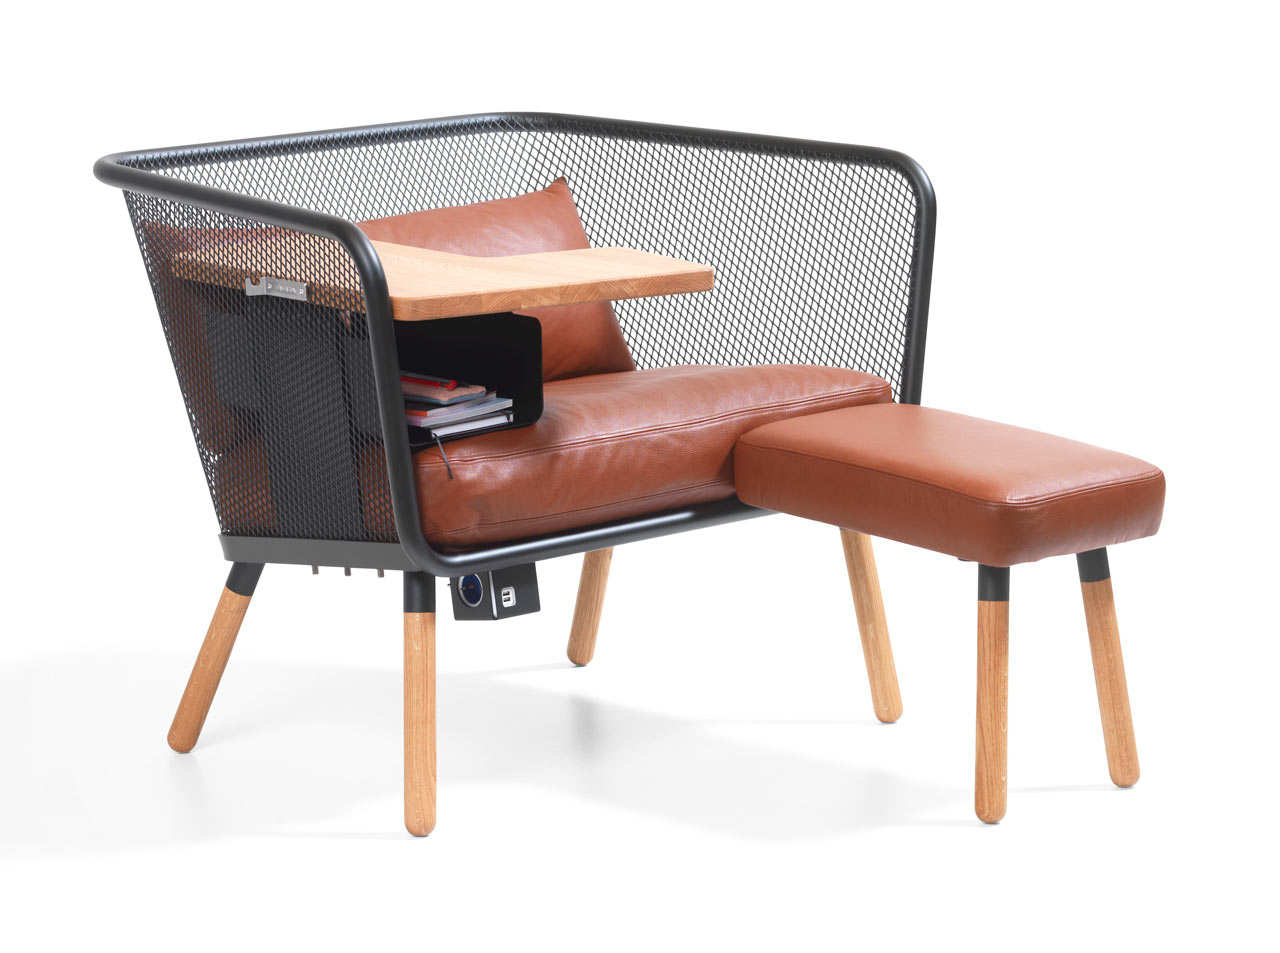 A Comfortable Workstation with Everything You Might Need